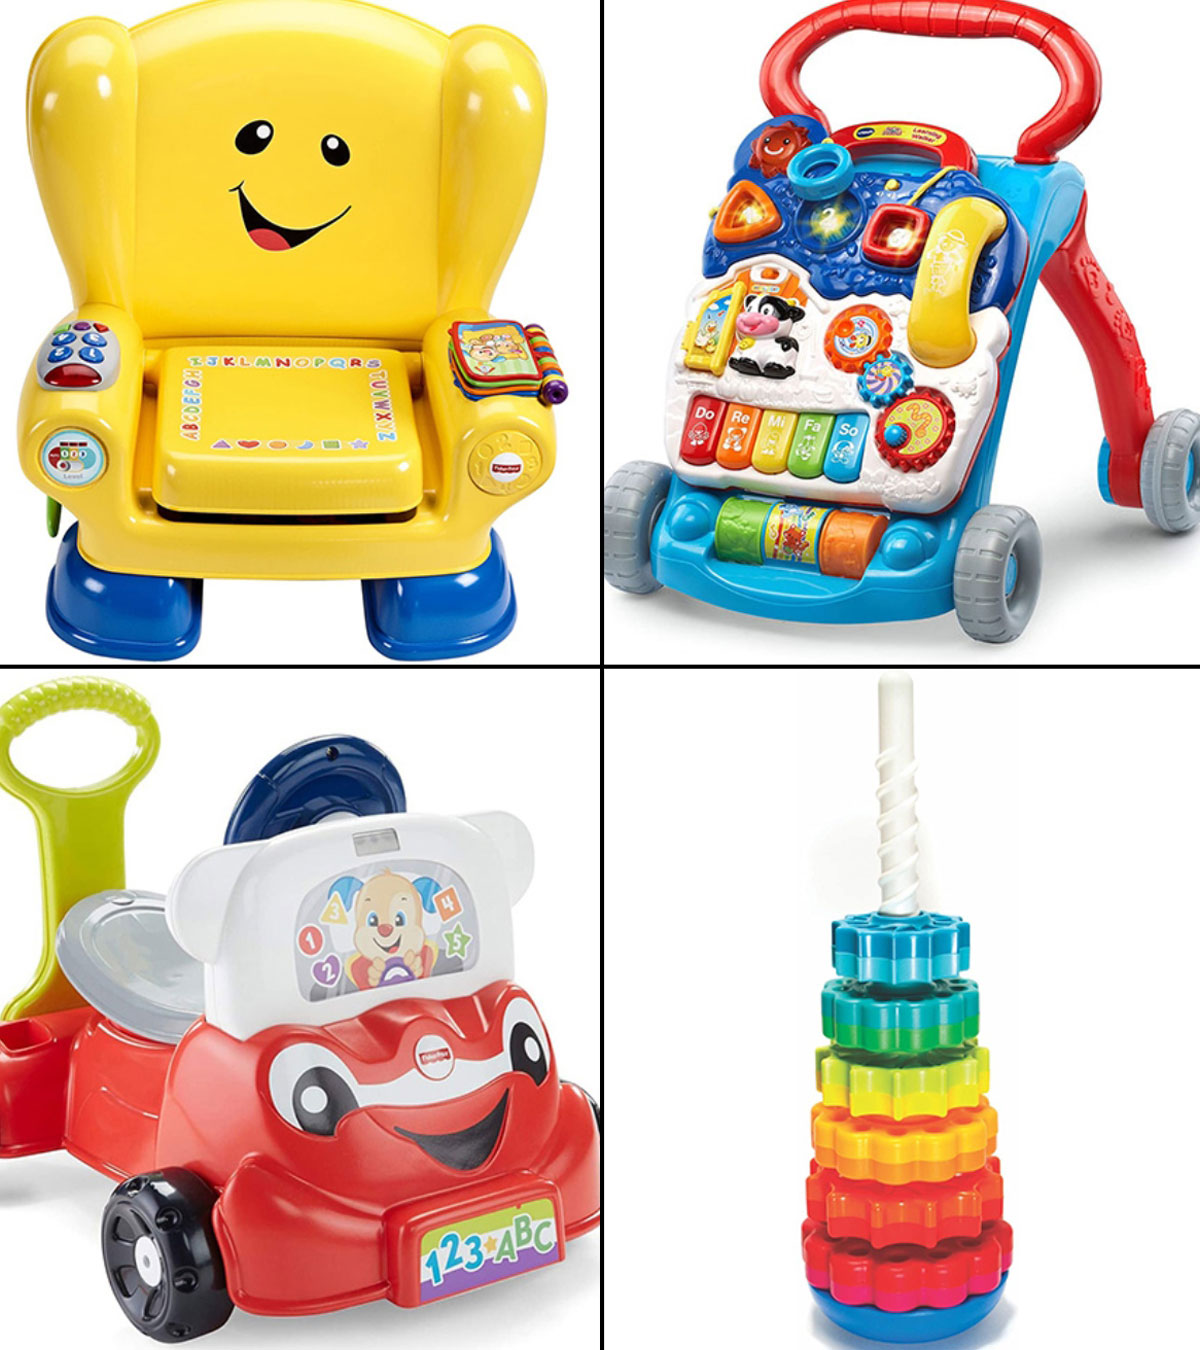 Early Education 6 Months Olds Baby Toy Learning Machine Toy with Lights and FAST